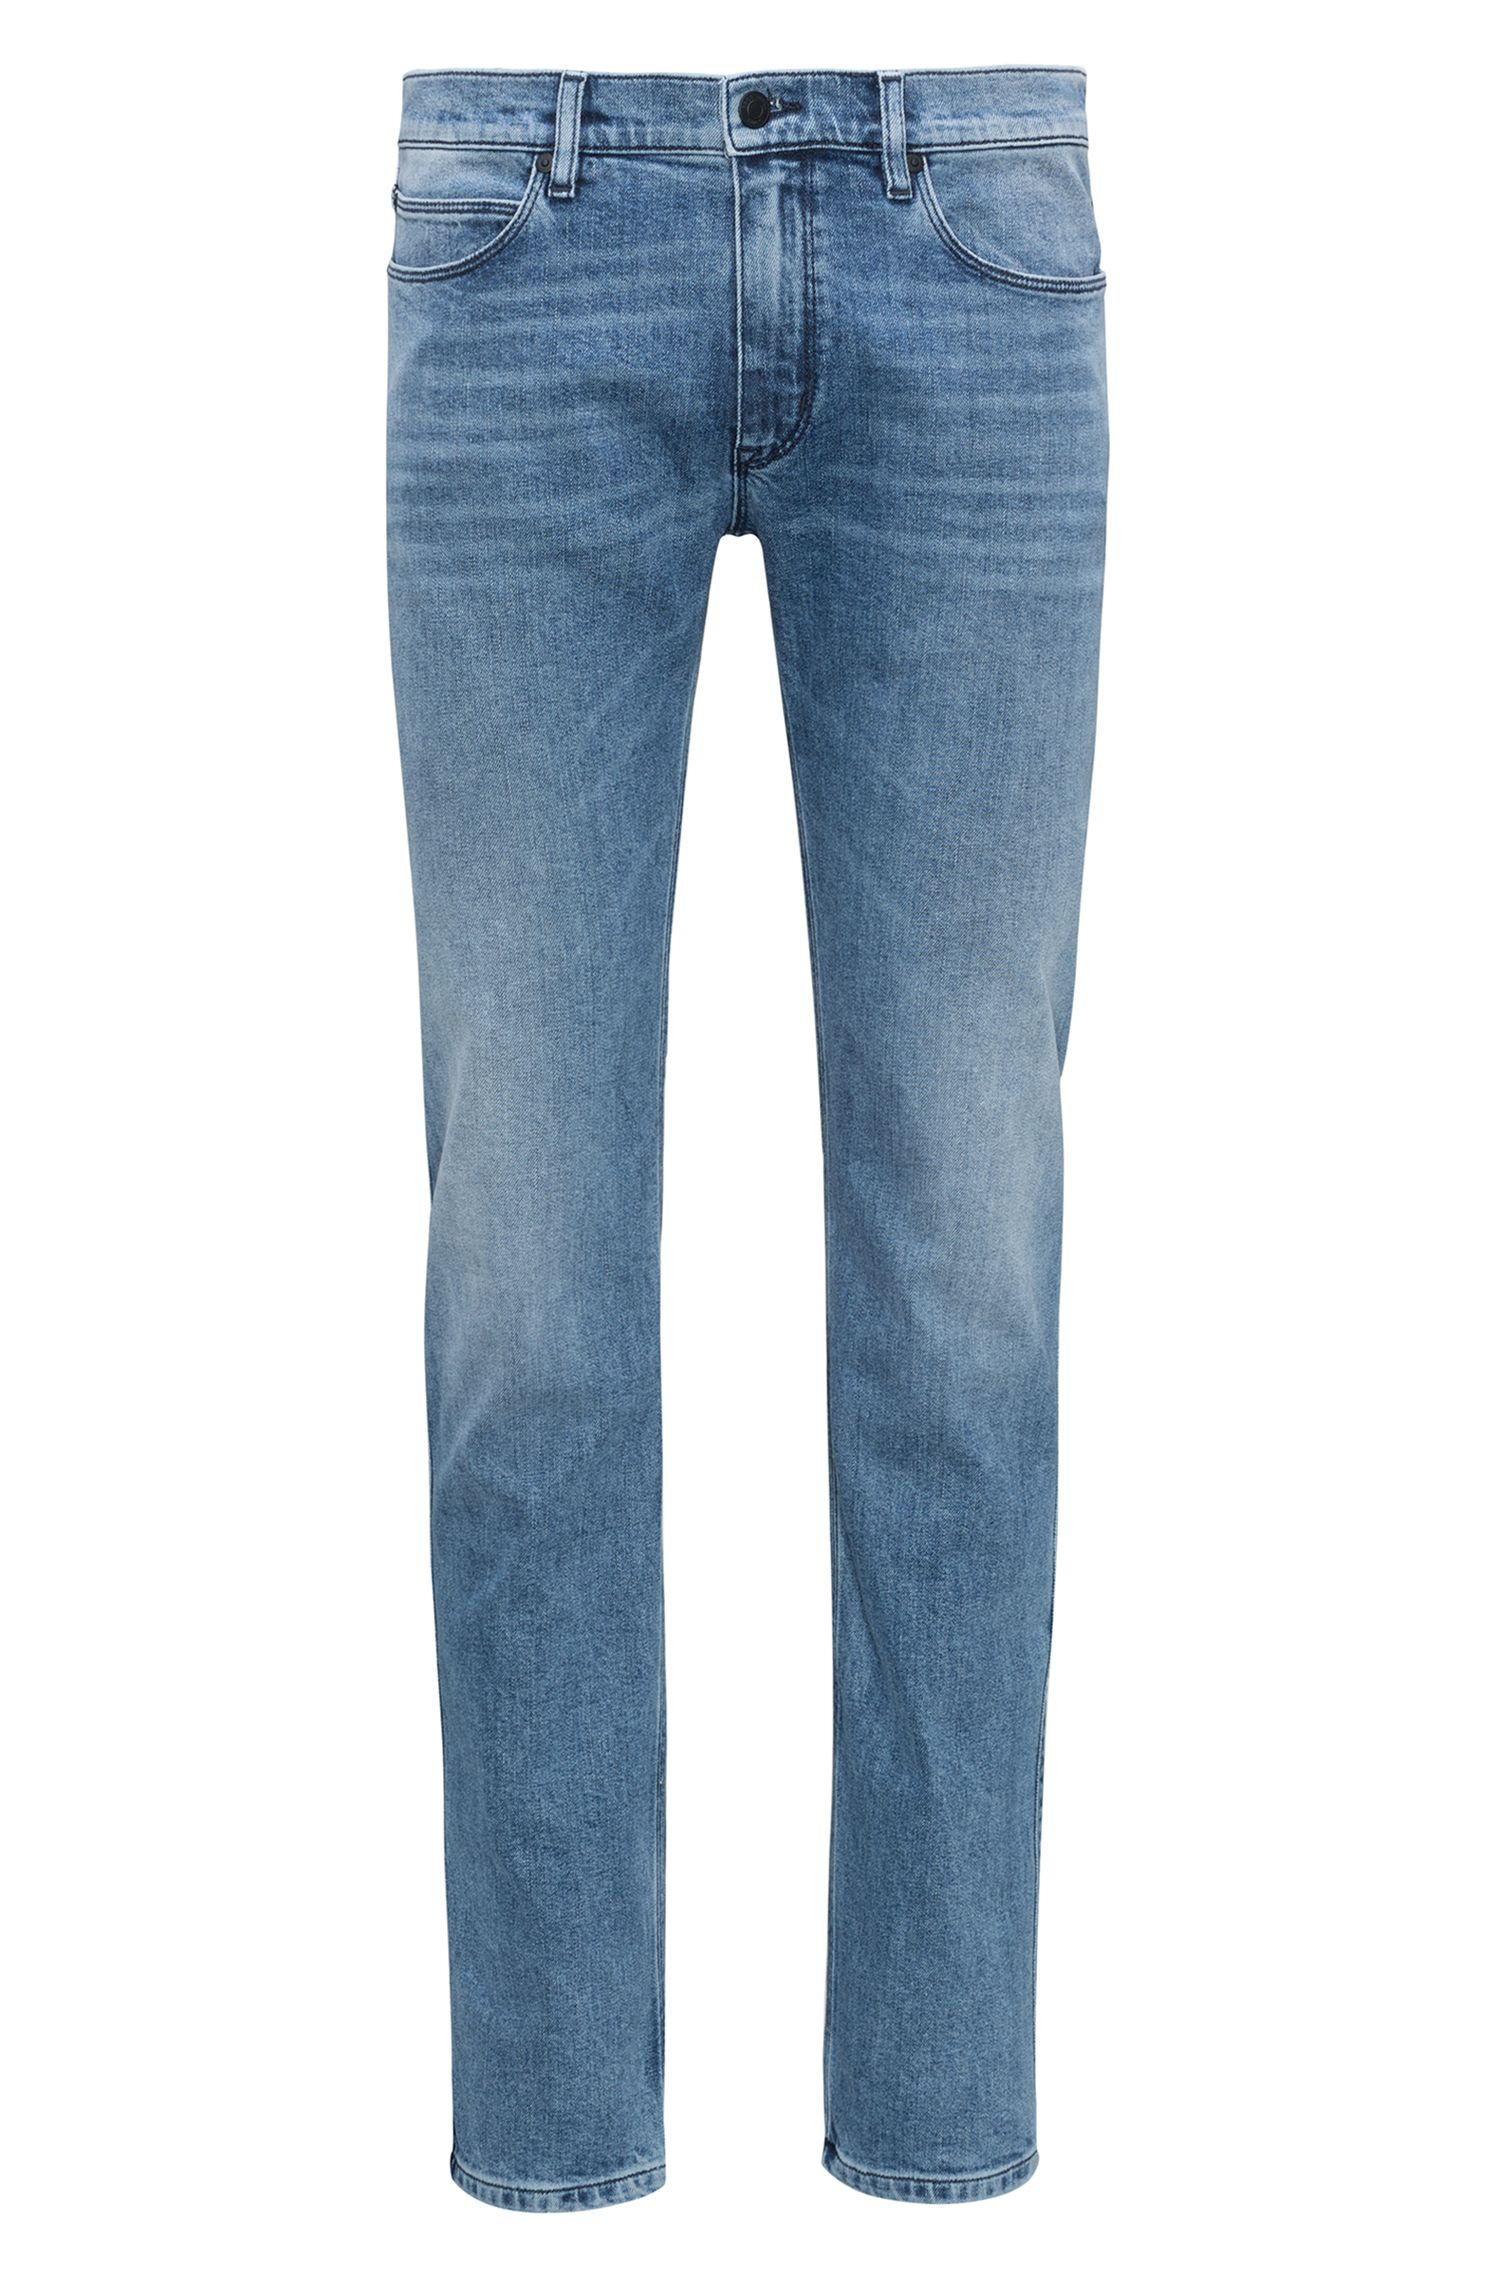 Mid-blue denim jeans in a slim fit HUGO BOSS